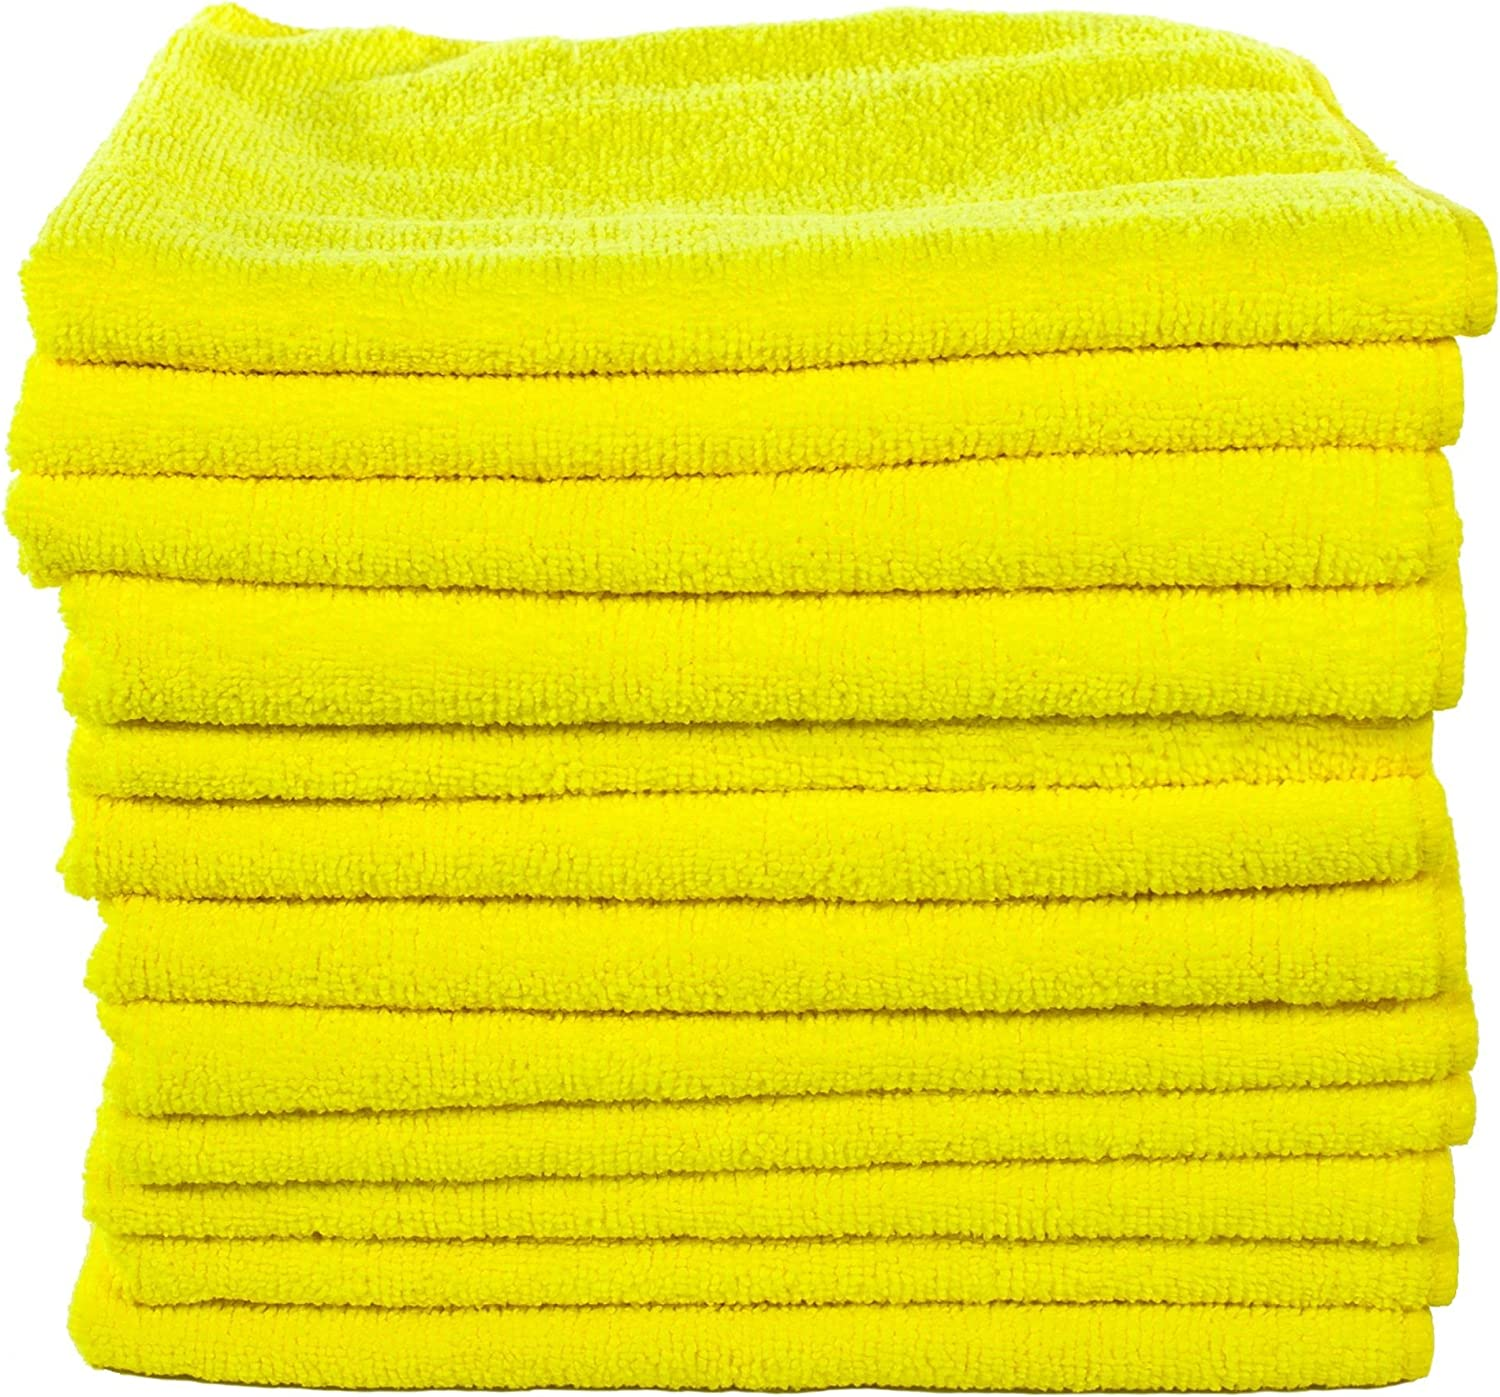 Pack of 12 Real Clean MIC/_MGREEN/_12 Workhorse Professional Grade Microfiber Towel Chemical and Water Safe Material 16 x 16 Green